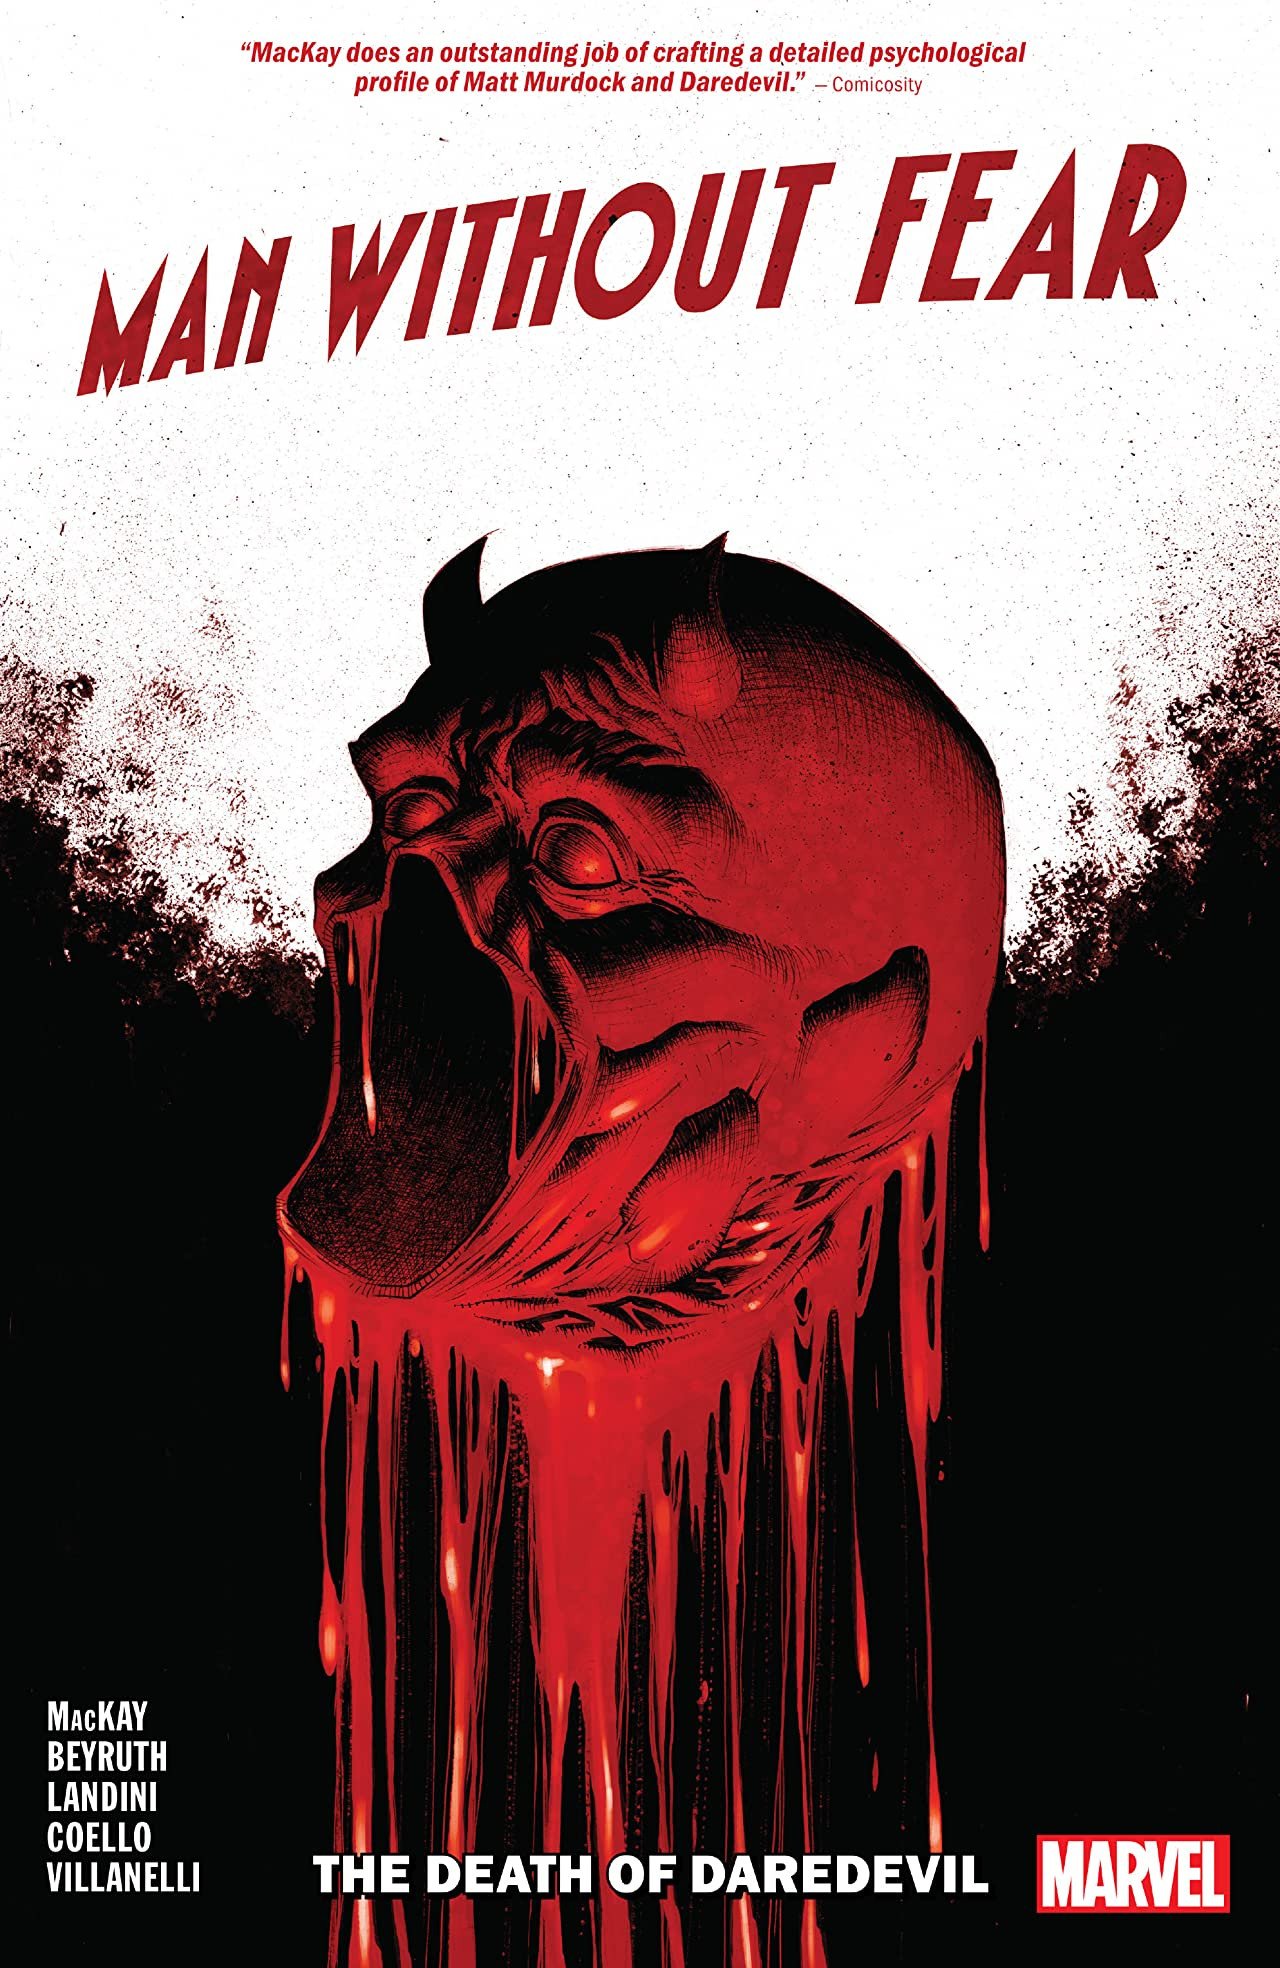 Man Without Fear TPB Vol 1 1: The Death of Daredevil